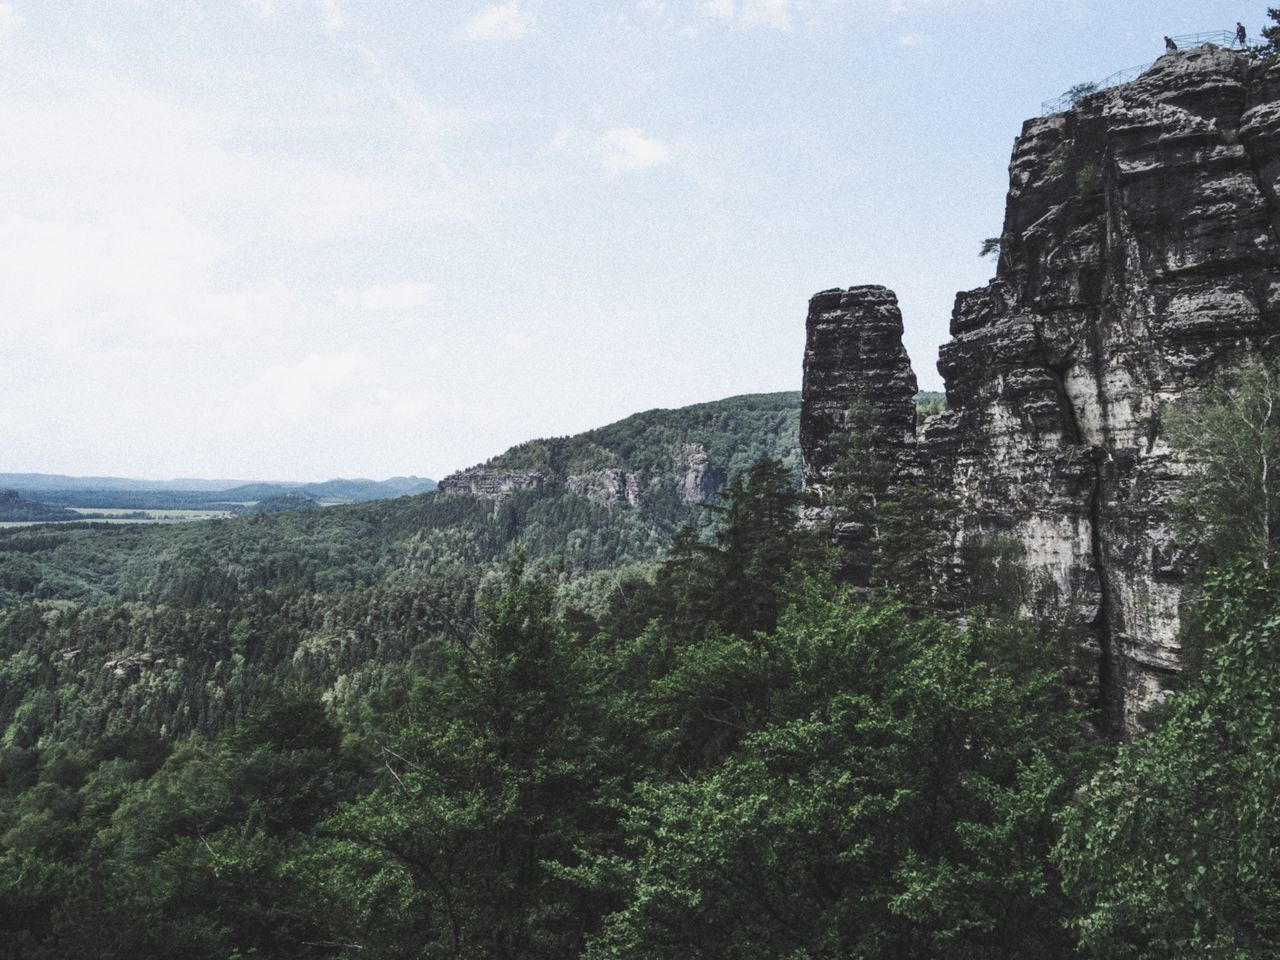 Sky Nature Day Tree Mountain Low Angle View No People Cliff Outdoors Beauty In Nature Traveling Travel Destinations View From Above Sächsische Schweiz Prebischtor Böhmische Schweiz Rock Formation Rock Stone Travel Tranquil Scene Landscape Rocks Mountain View Forest